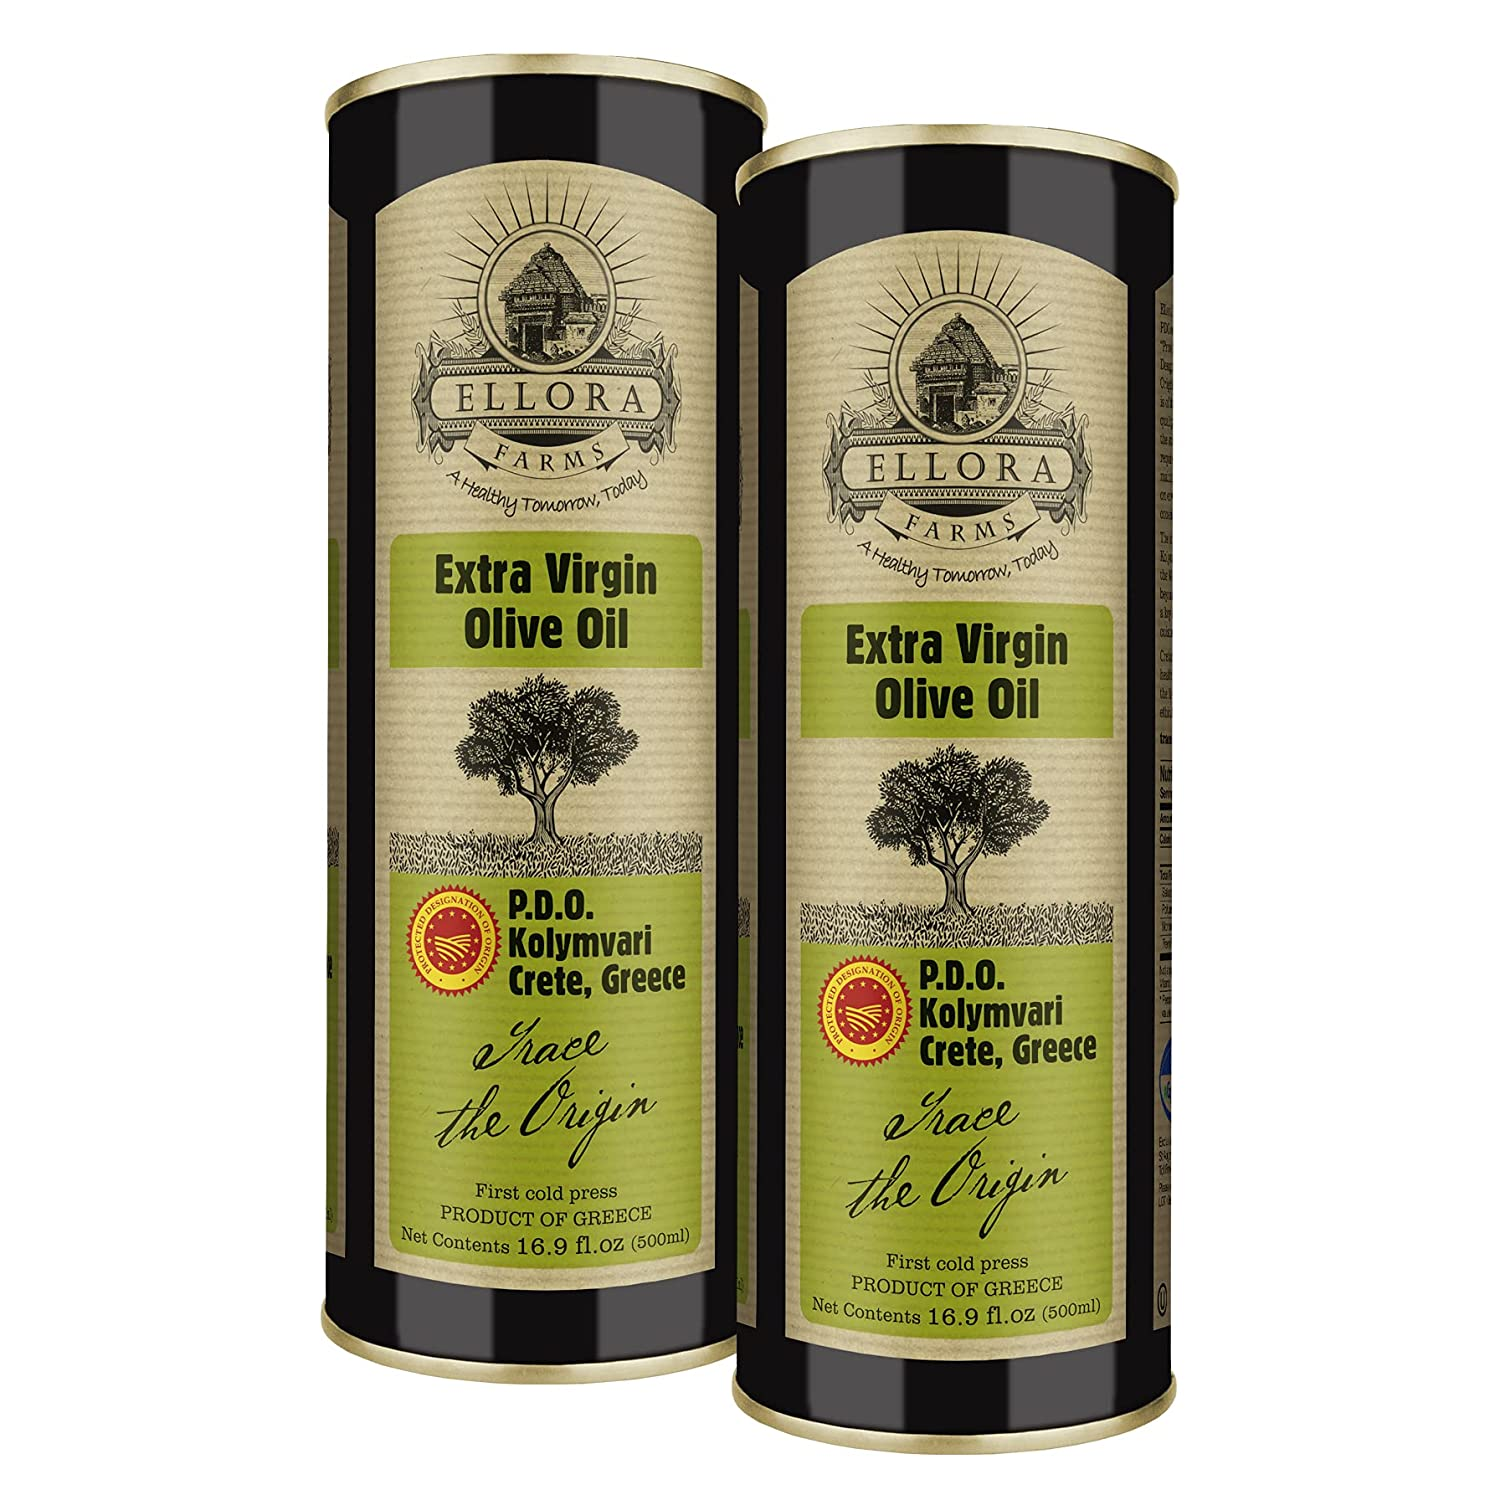 Ellora Farms Gold Award Challenge the lowest price NEW Winning Greek S Oil Extra Olive Virgin